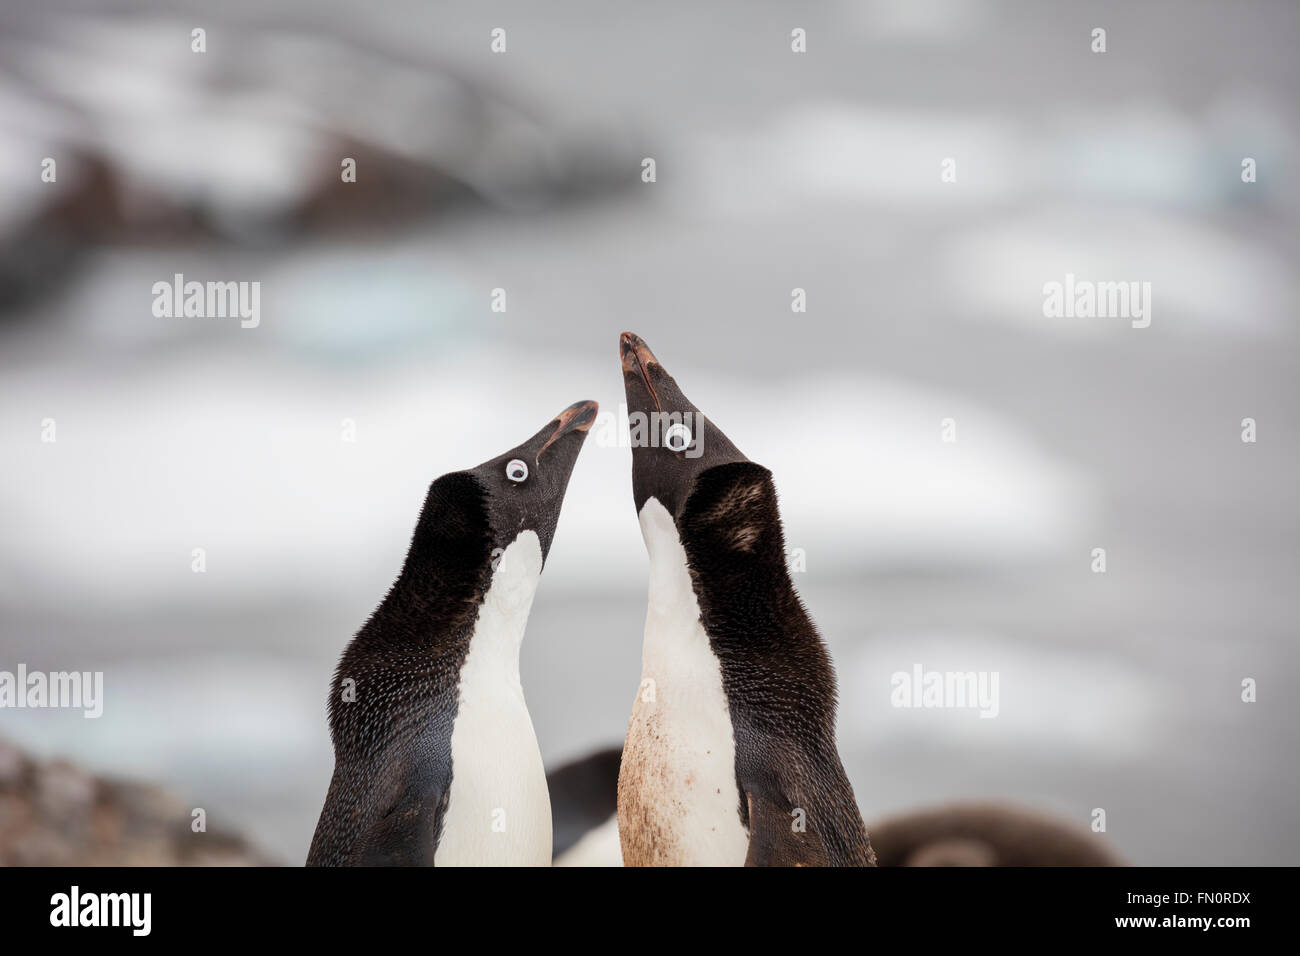 Antarctica, Antarctic peninsula, Petermann Island, Adelie penguin, courtship behaviour - Stock Image